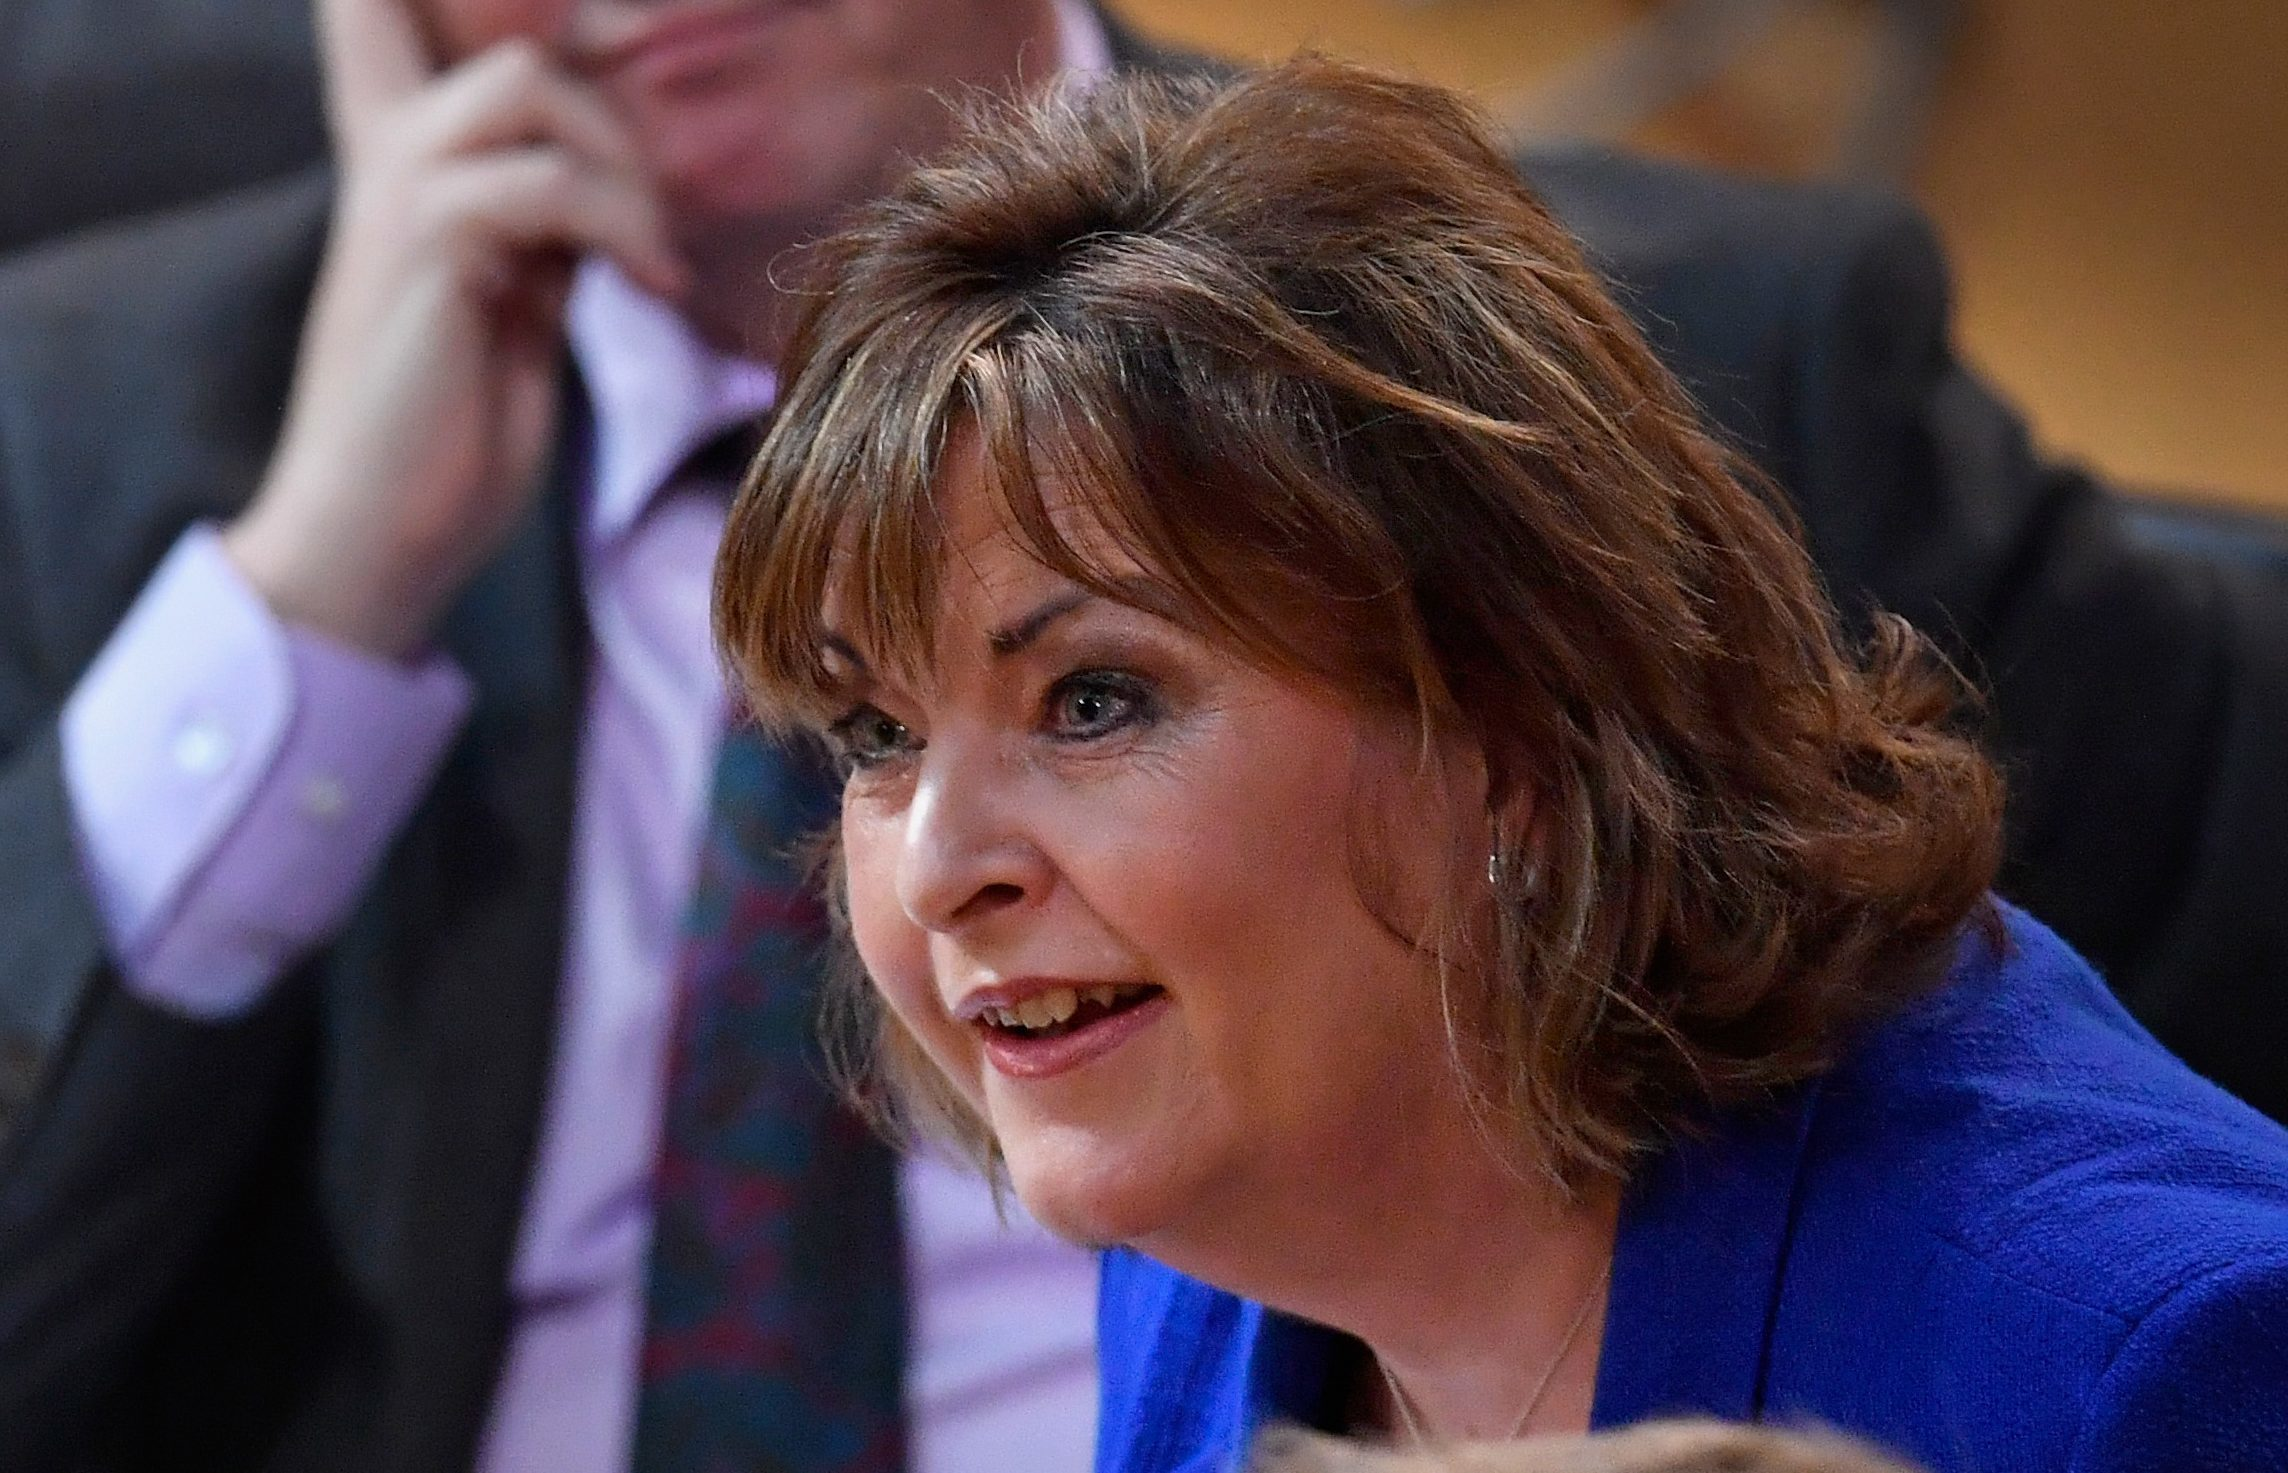 Cabinet Secretary Fiona Hyslop speaks during a debate to keep Scotland in the European single market at the Scottish Parliament. (Jeff J Mitchell/Getty Images)